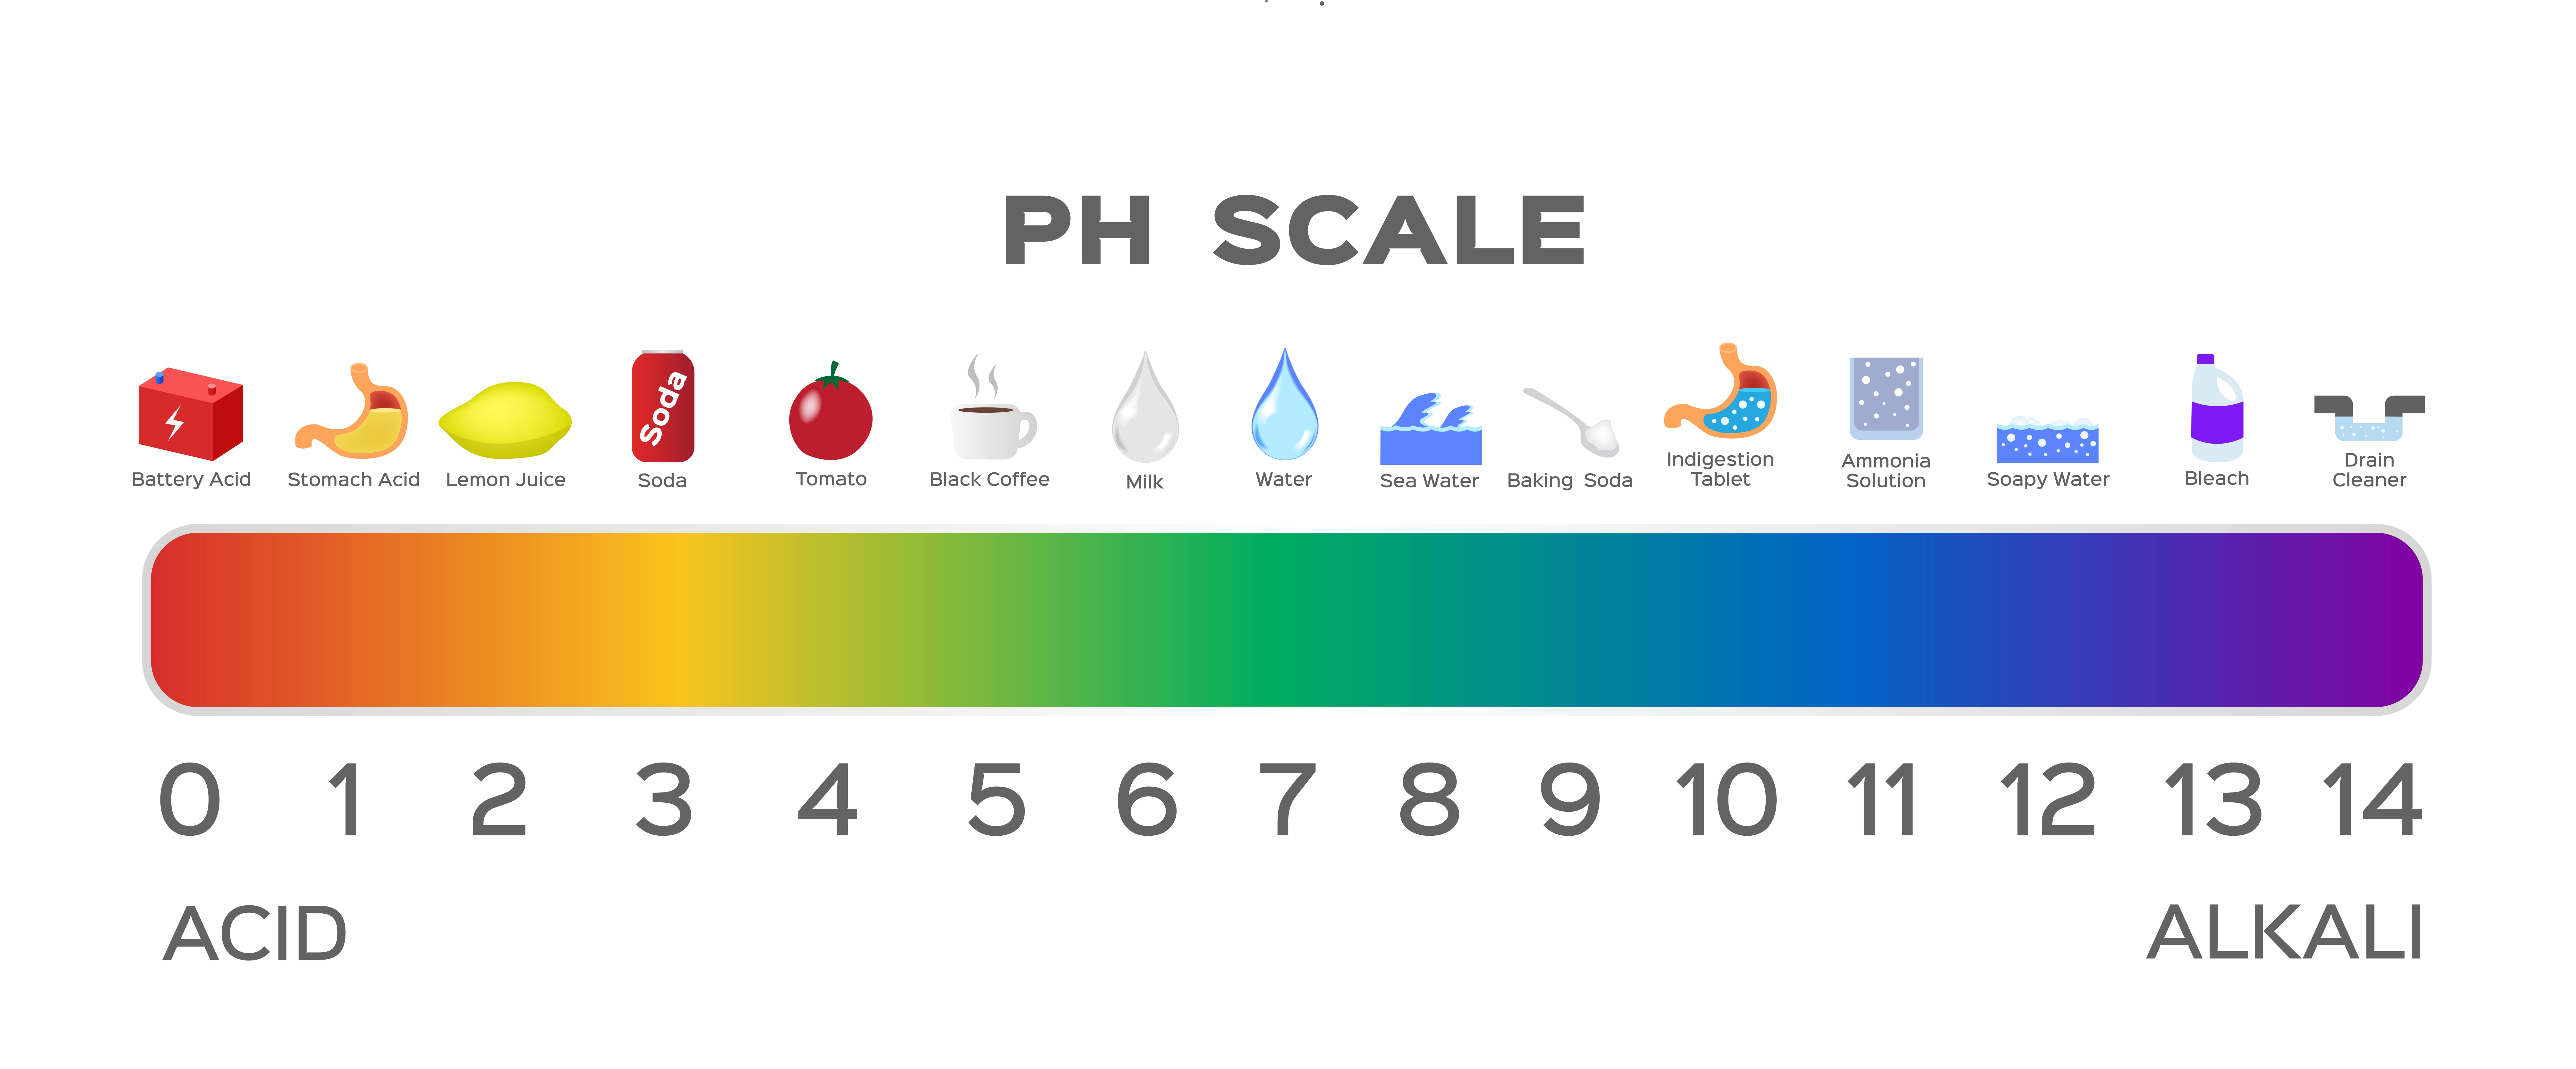 image of a pH scale